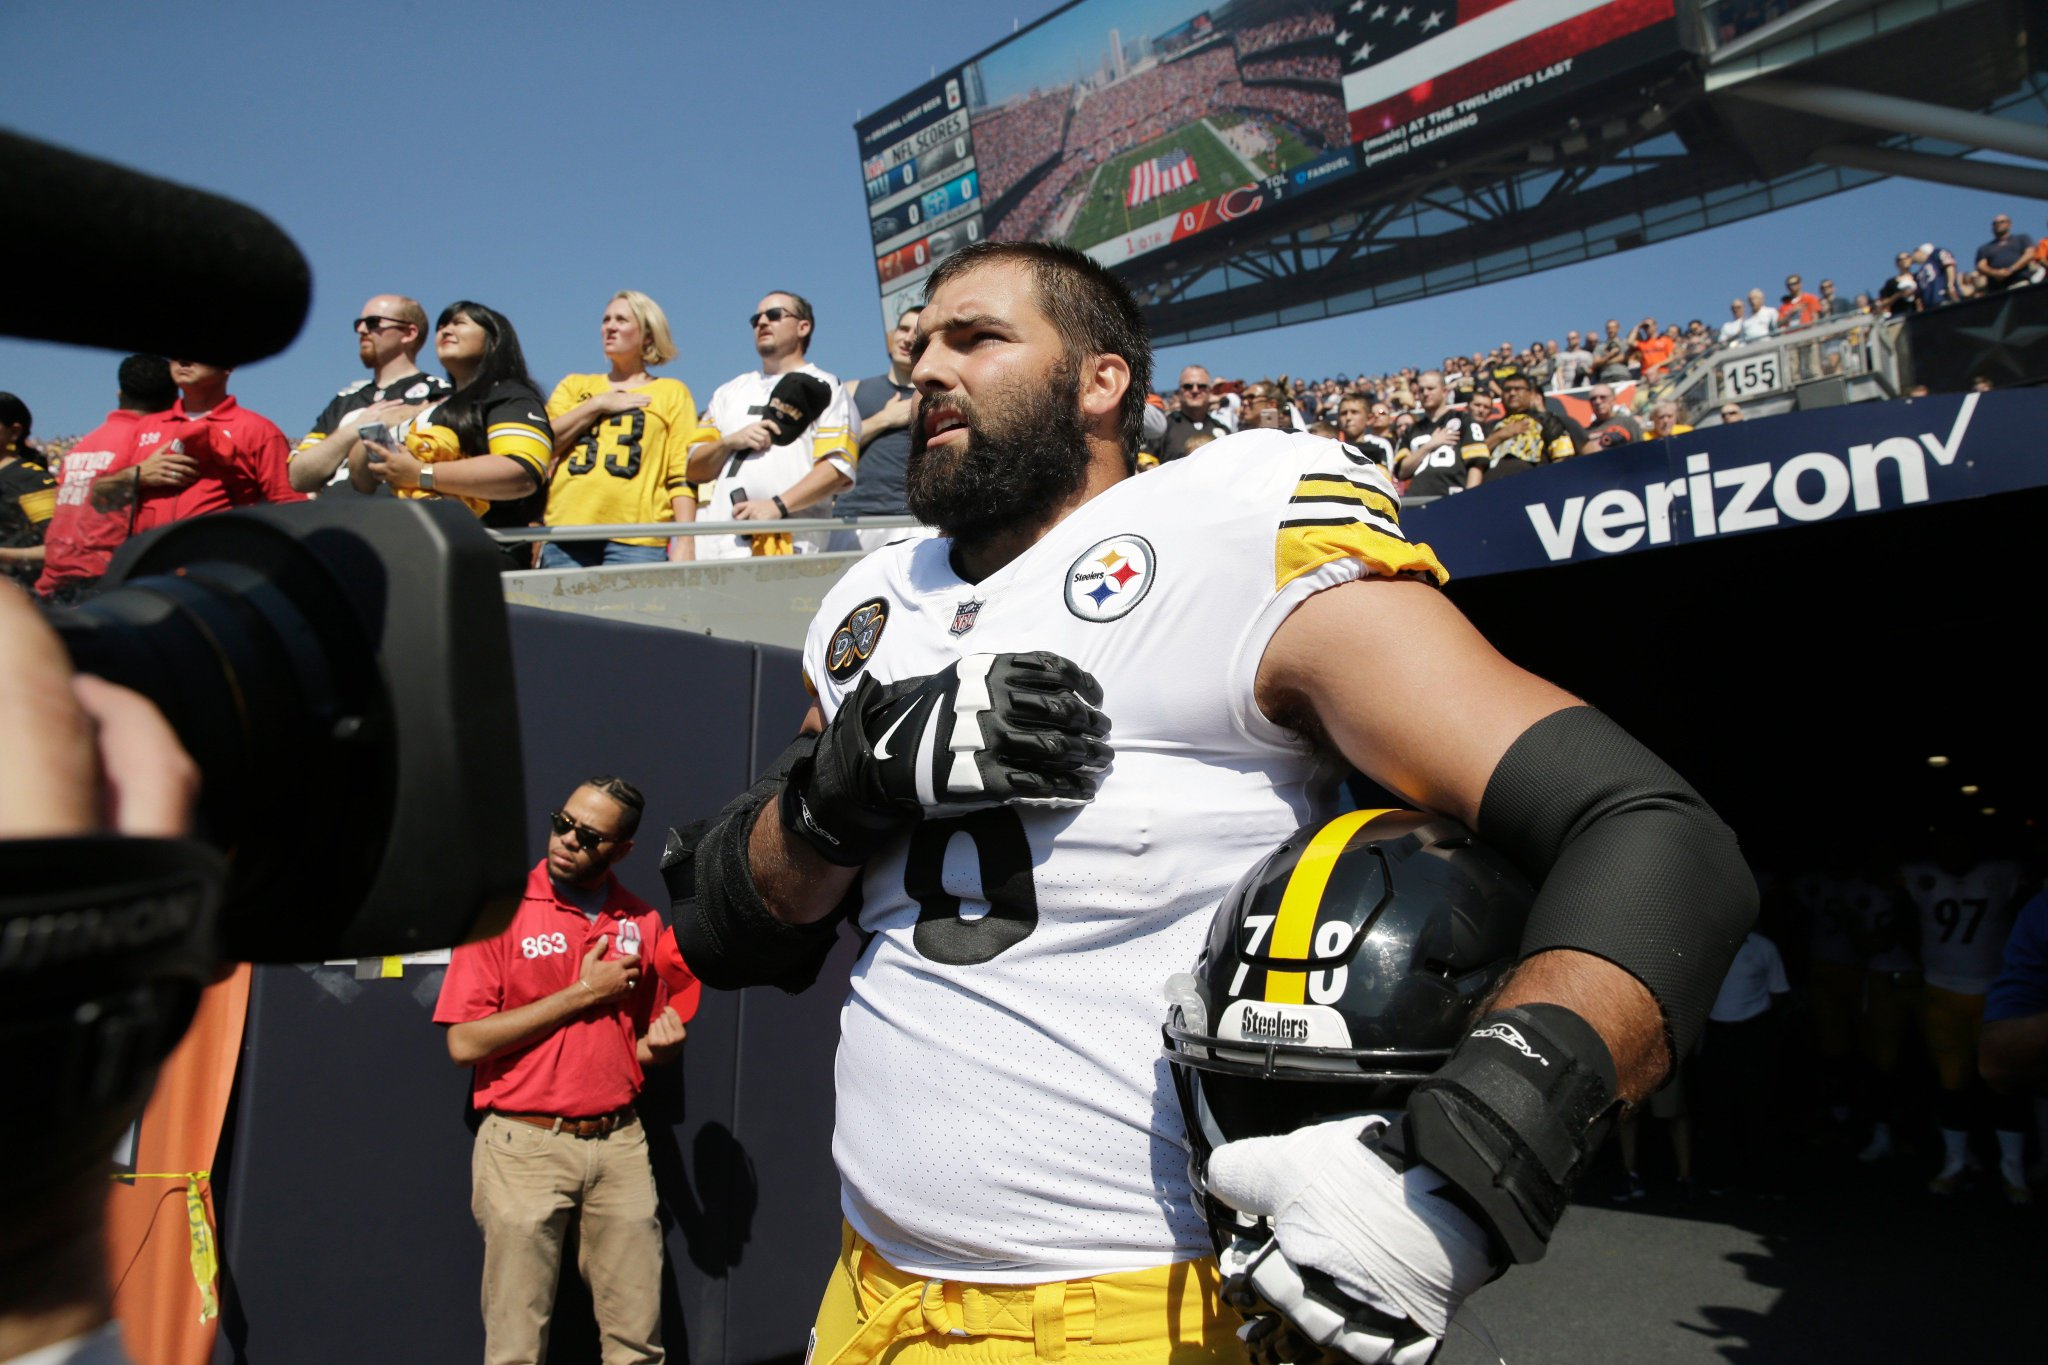 Former Army Ranger Alejandro Villanueva stood outside the tunnel alone during the national anthem. https://t.co/6KOZzSJj6q